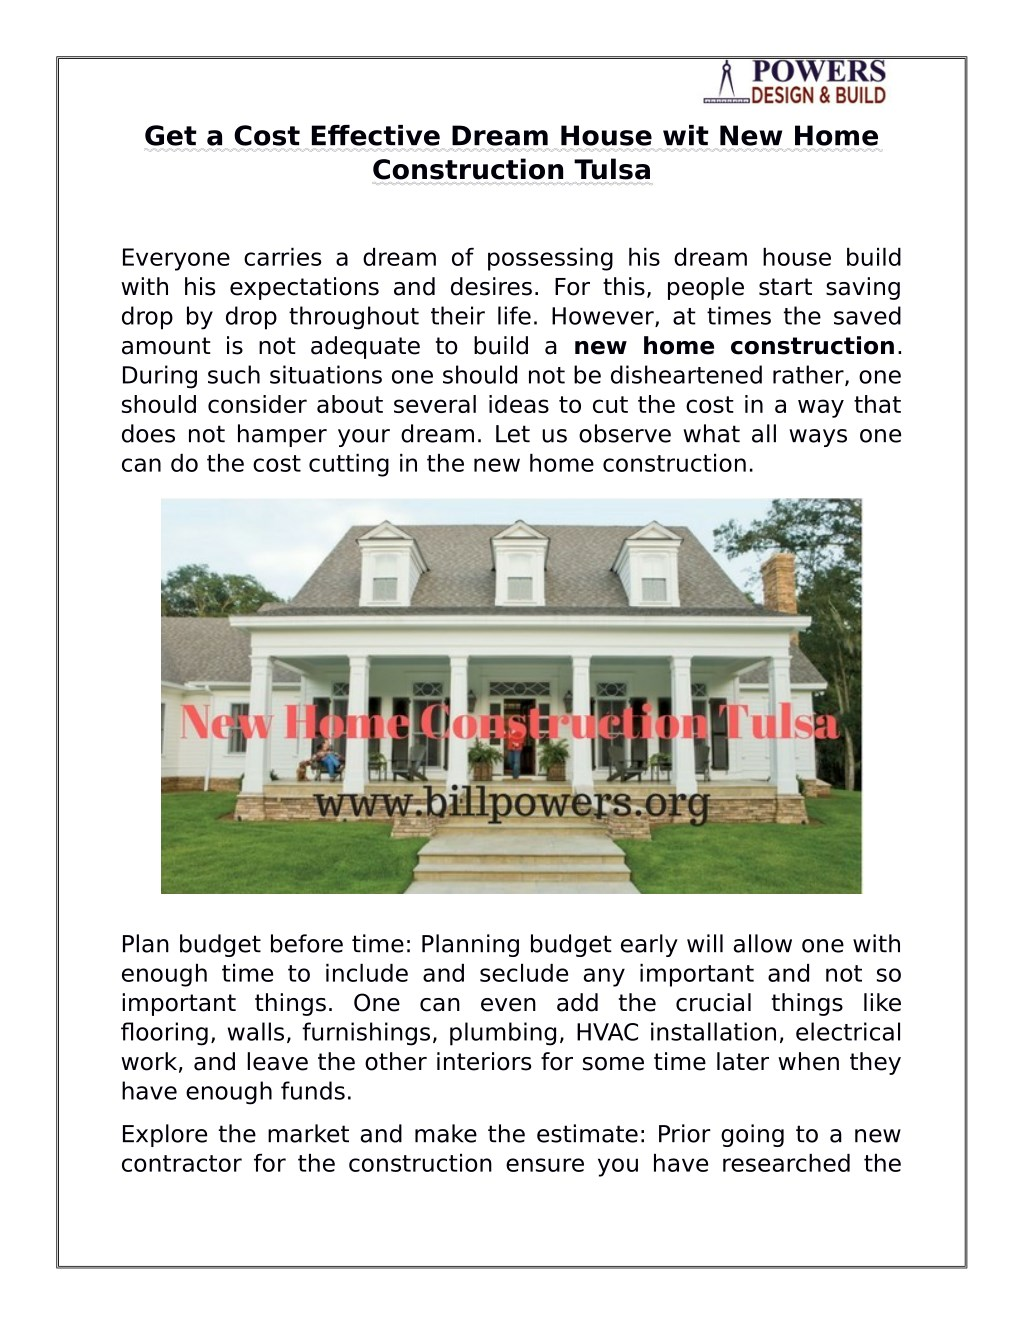 Ppt Get A Cost Effective Dream House Wit New Home Construction Tulsa Powerpoint Presentation Id 7807640